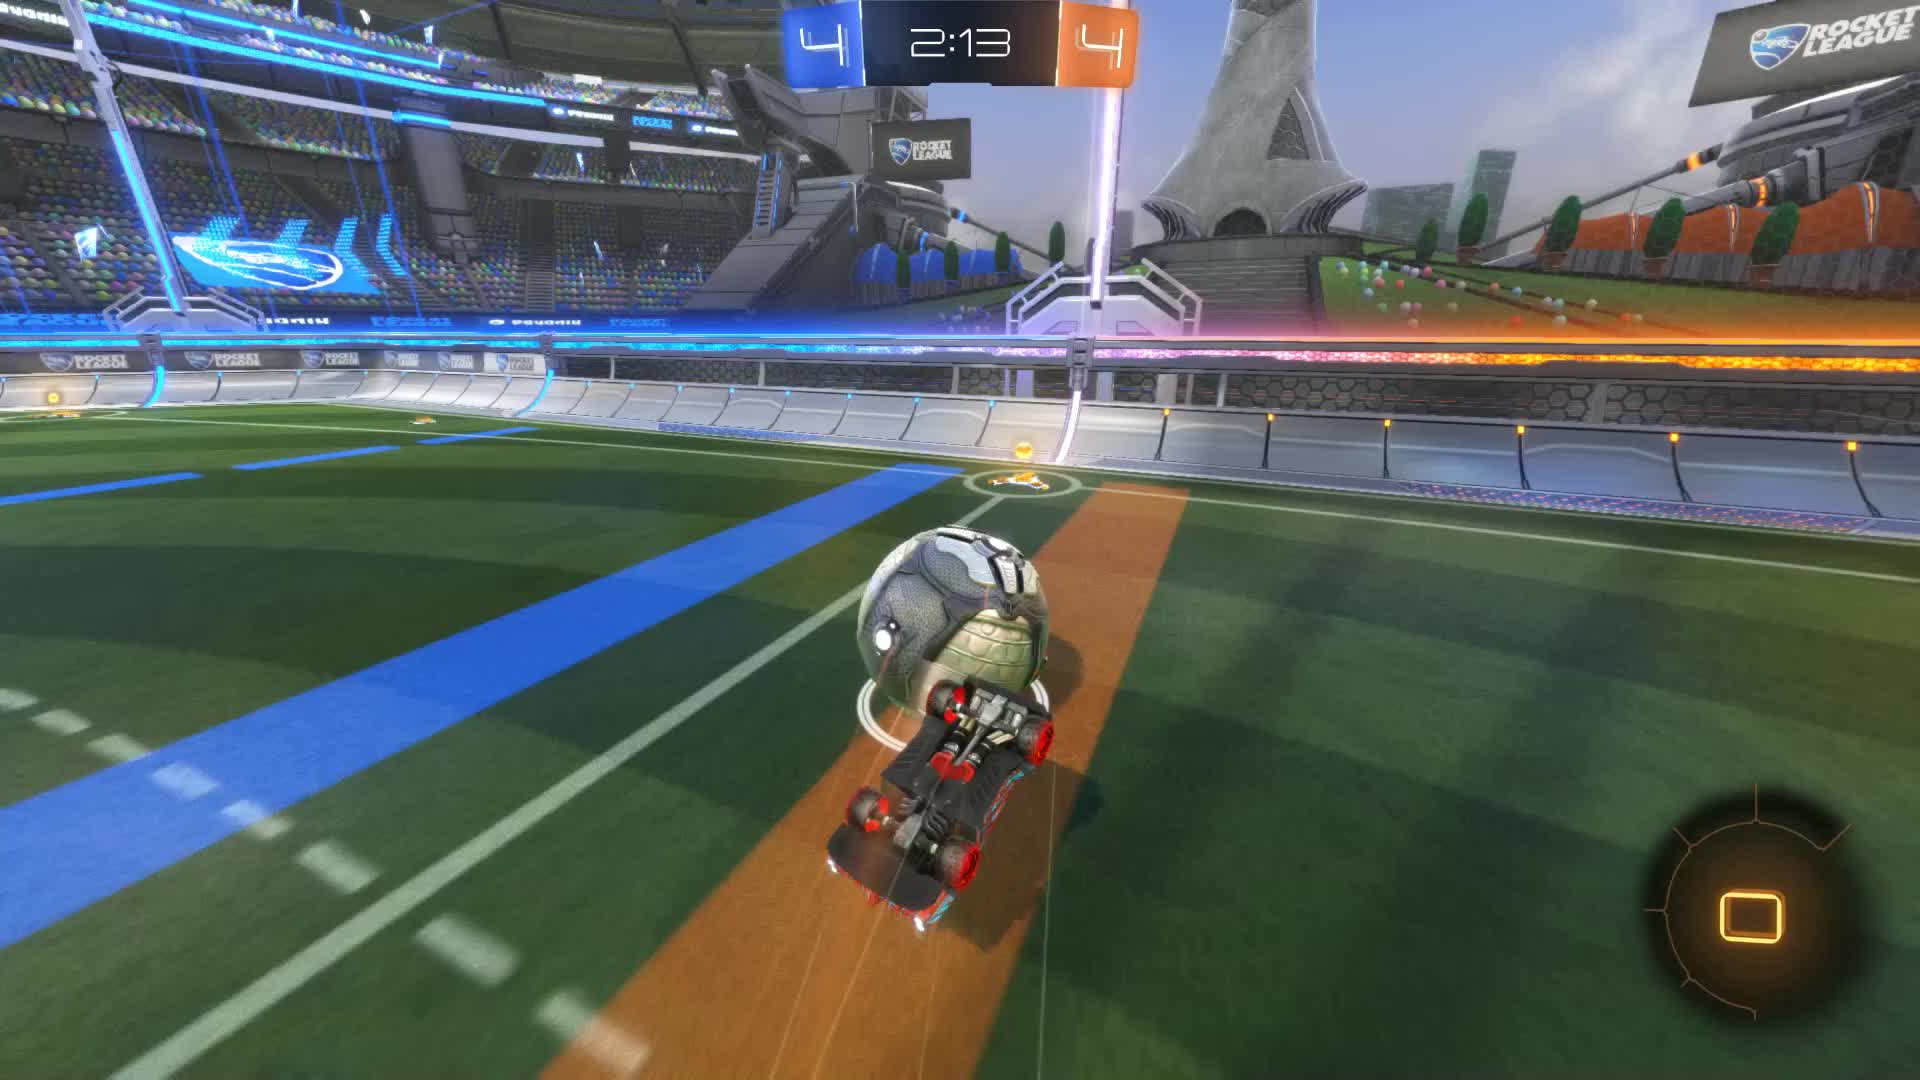 ANother, Gif Your Game, GifYourGame, Goal, Rocket League, RocketLeague, Goal 9: ANother GIFs